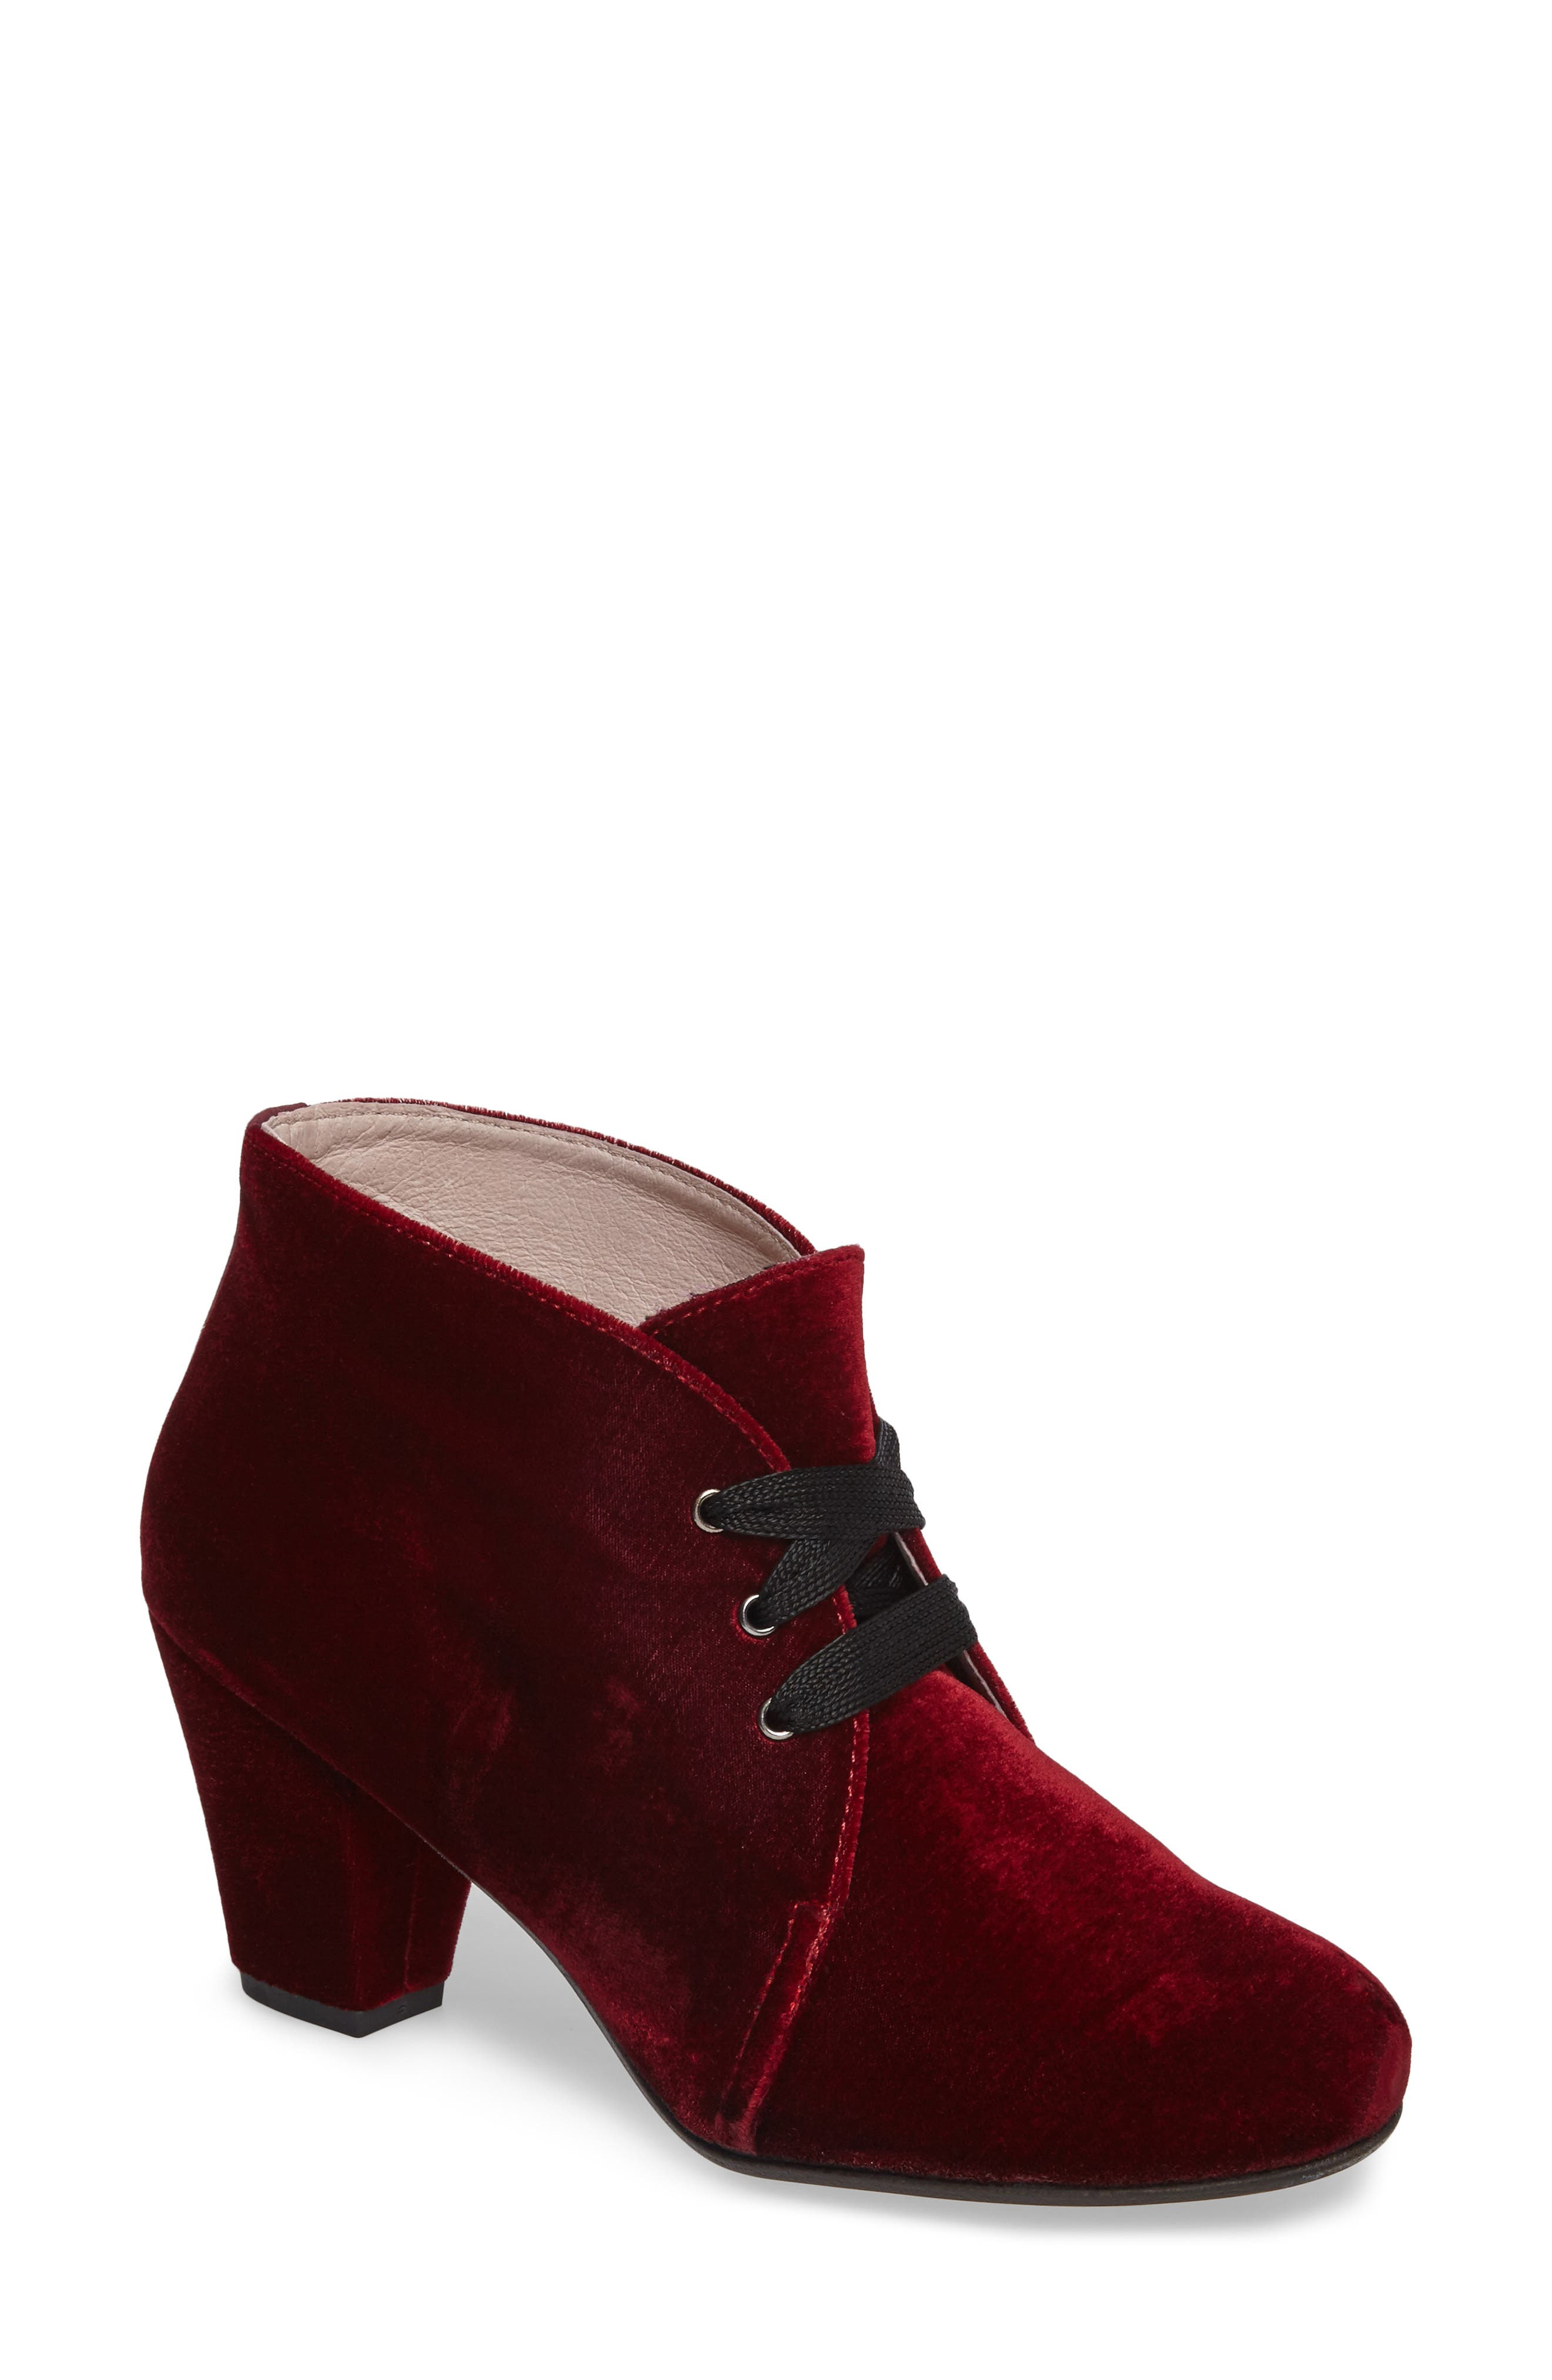 Main Image - patricia green Clair Lace-Up Bootie (Women)